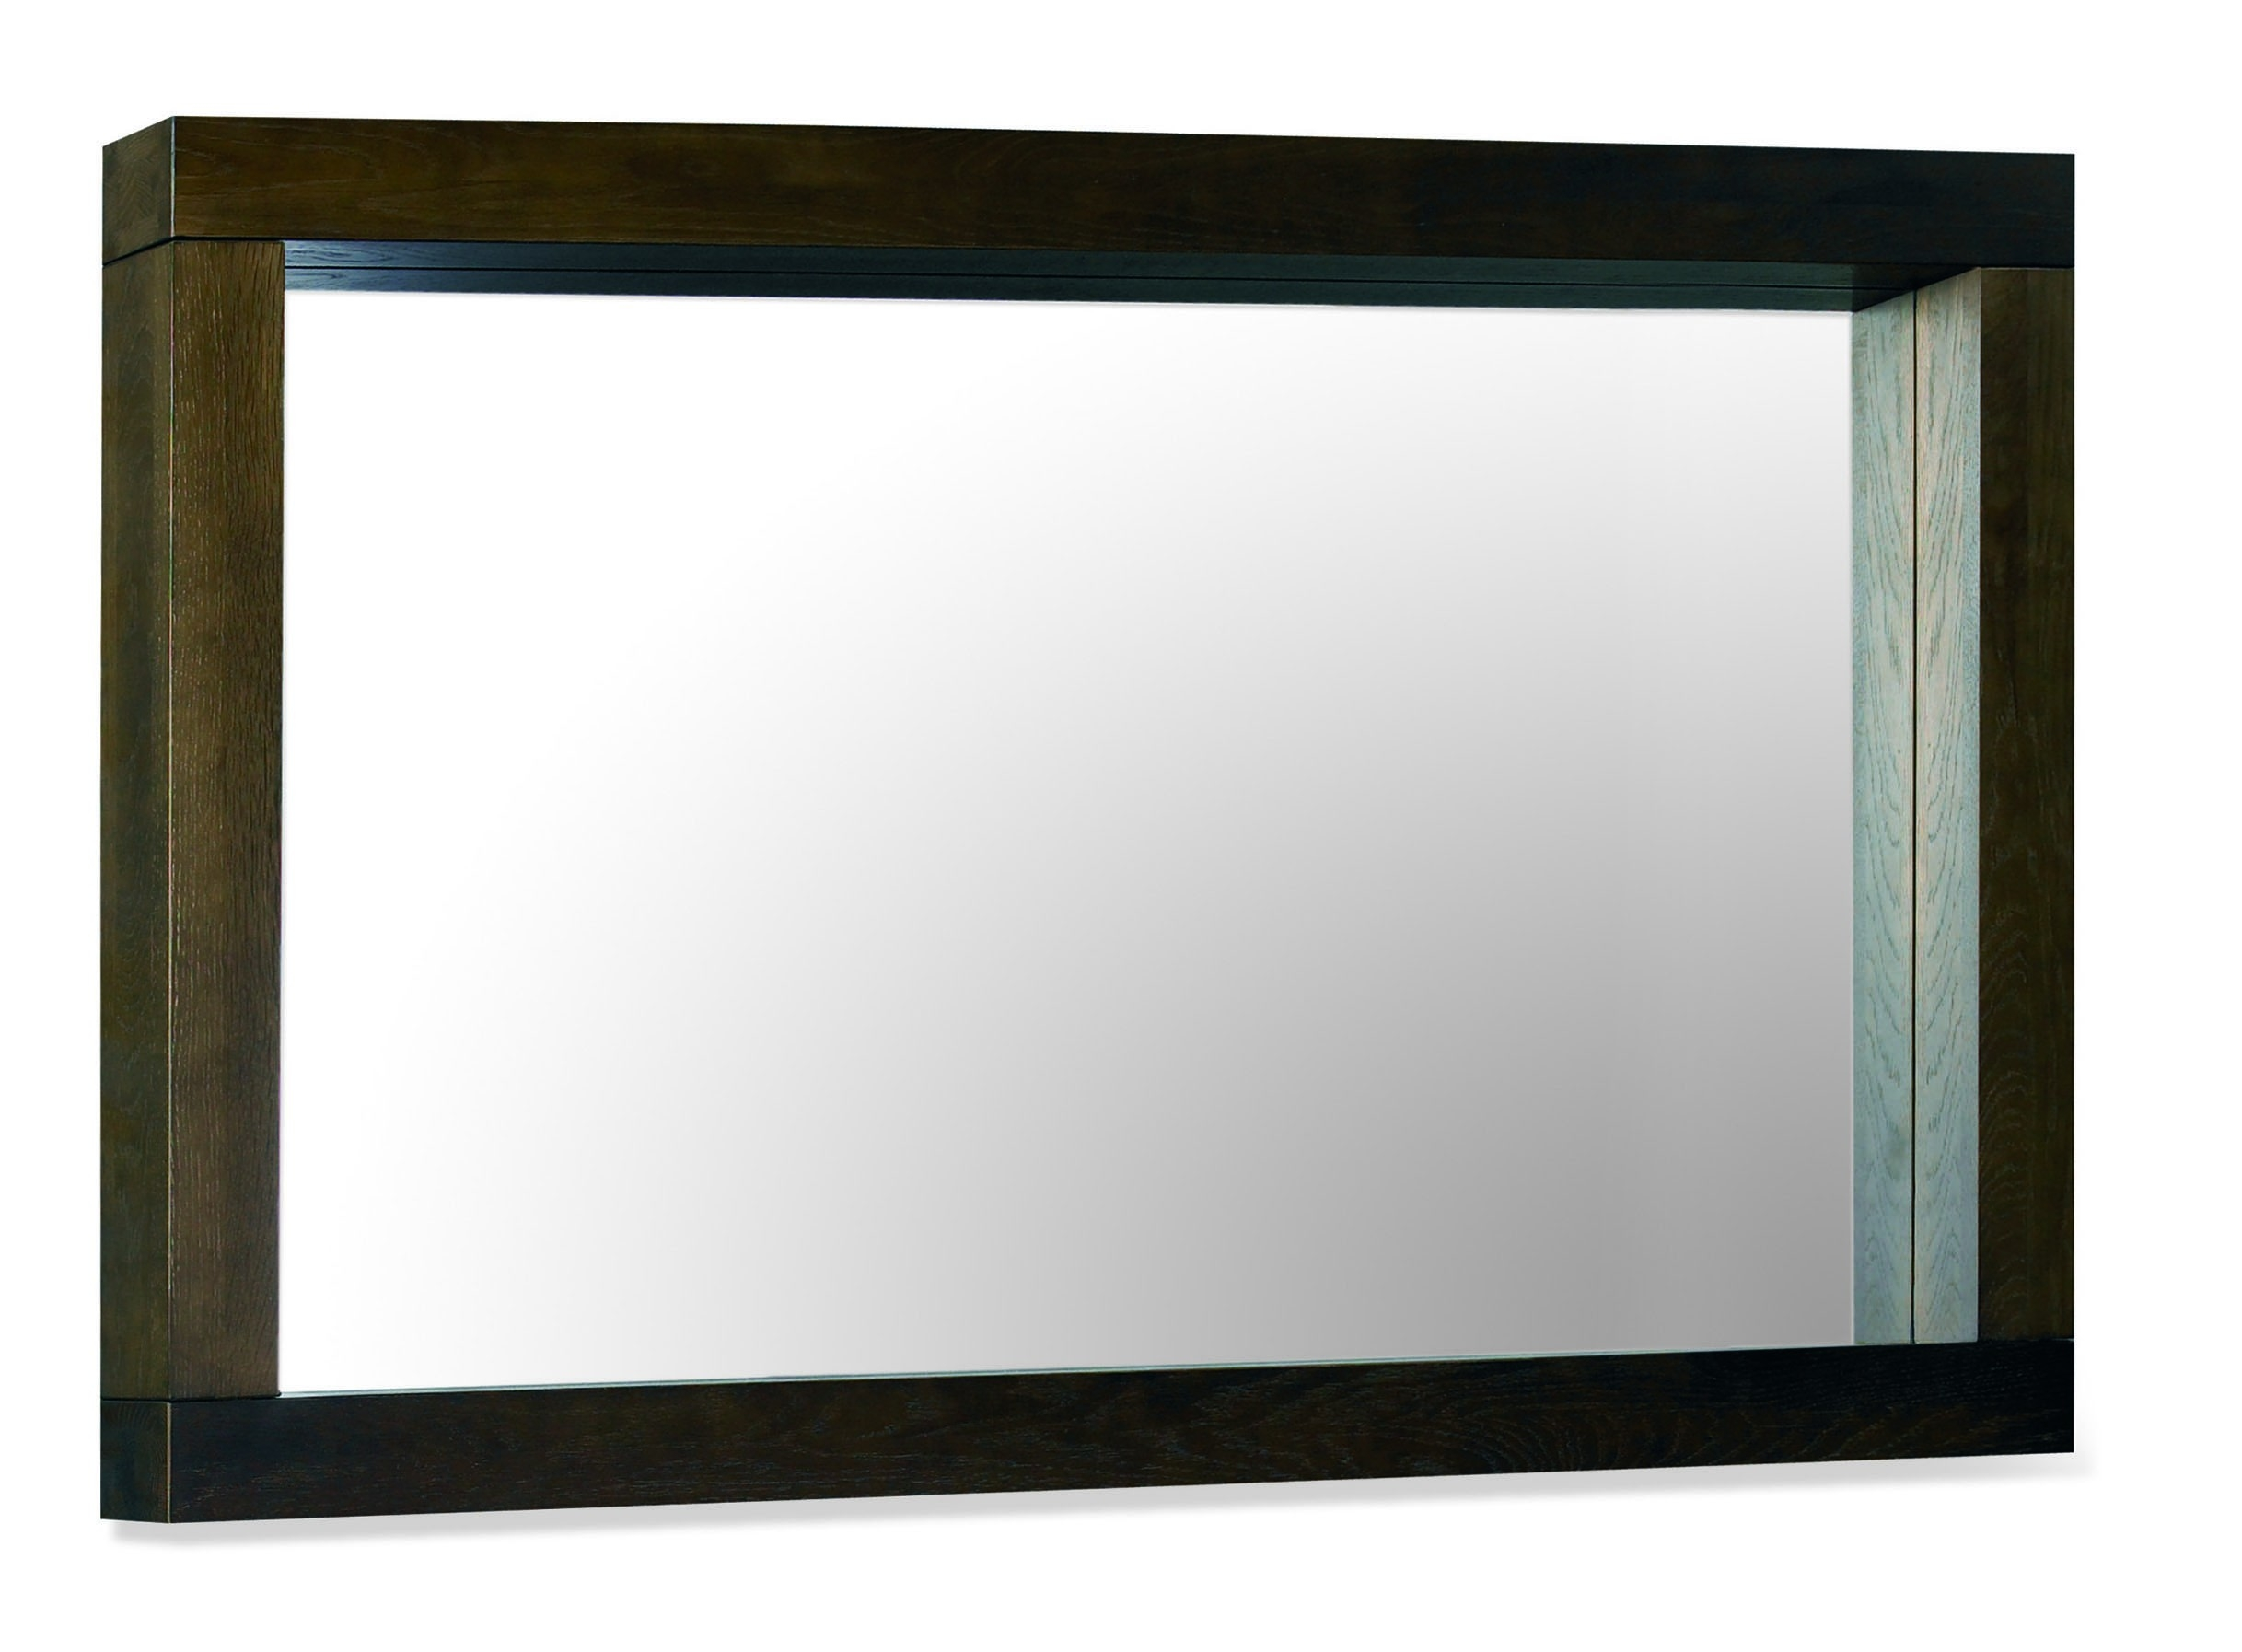 Lyon Walnut Large Landscape Mirror Bentley Designs With Regard To Large Landscape Mirror (Image 13 of 15)